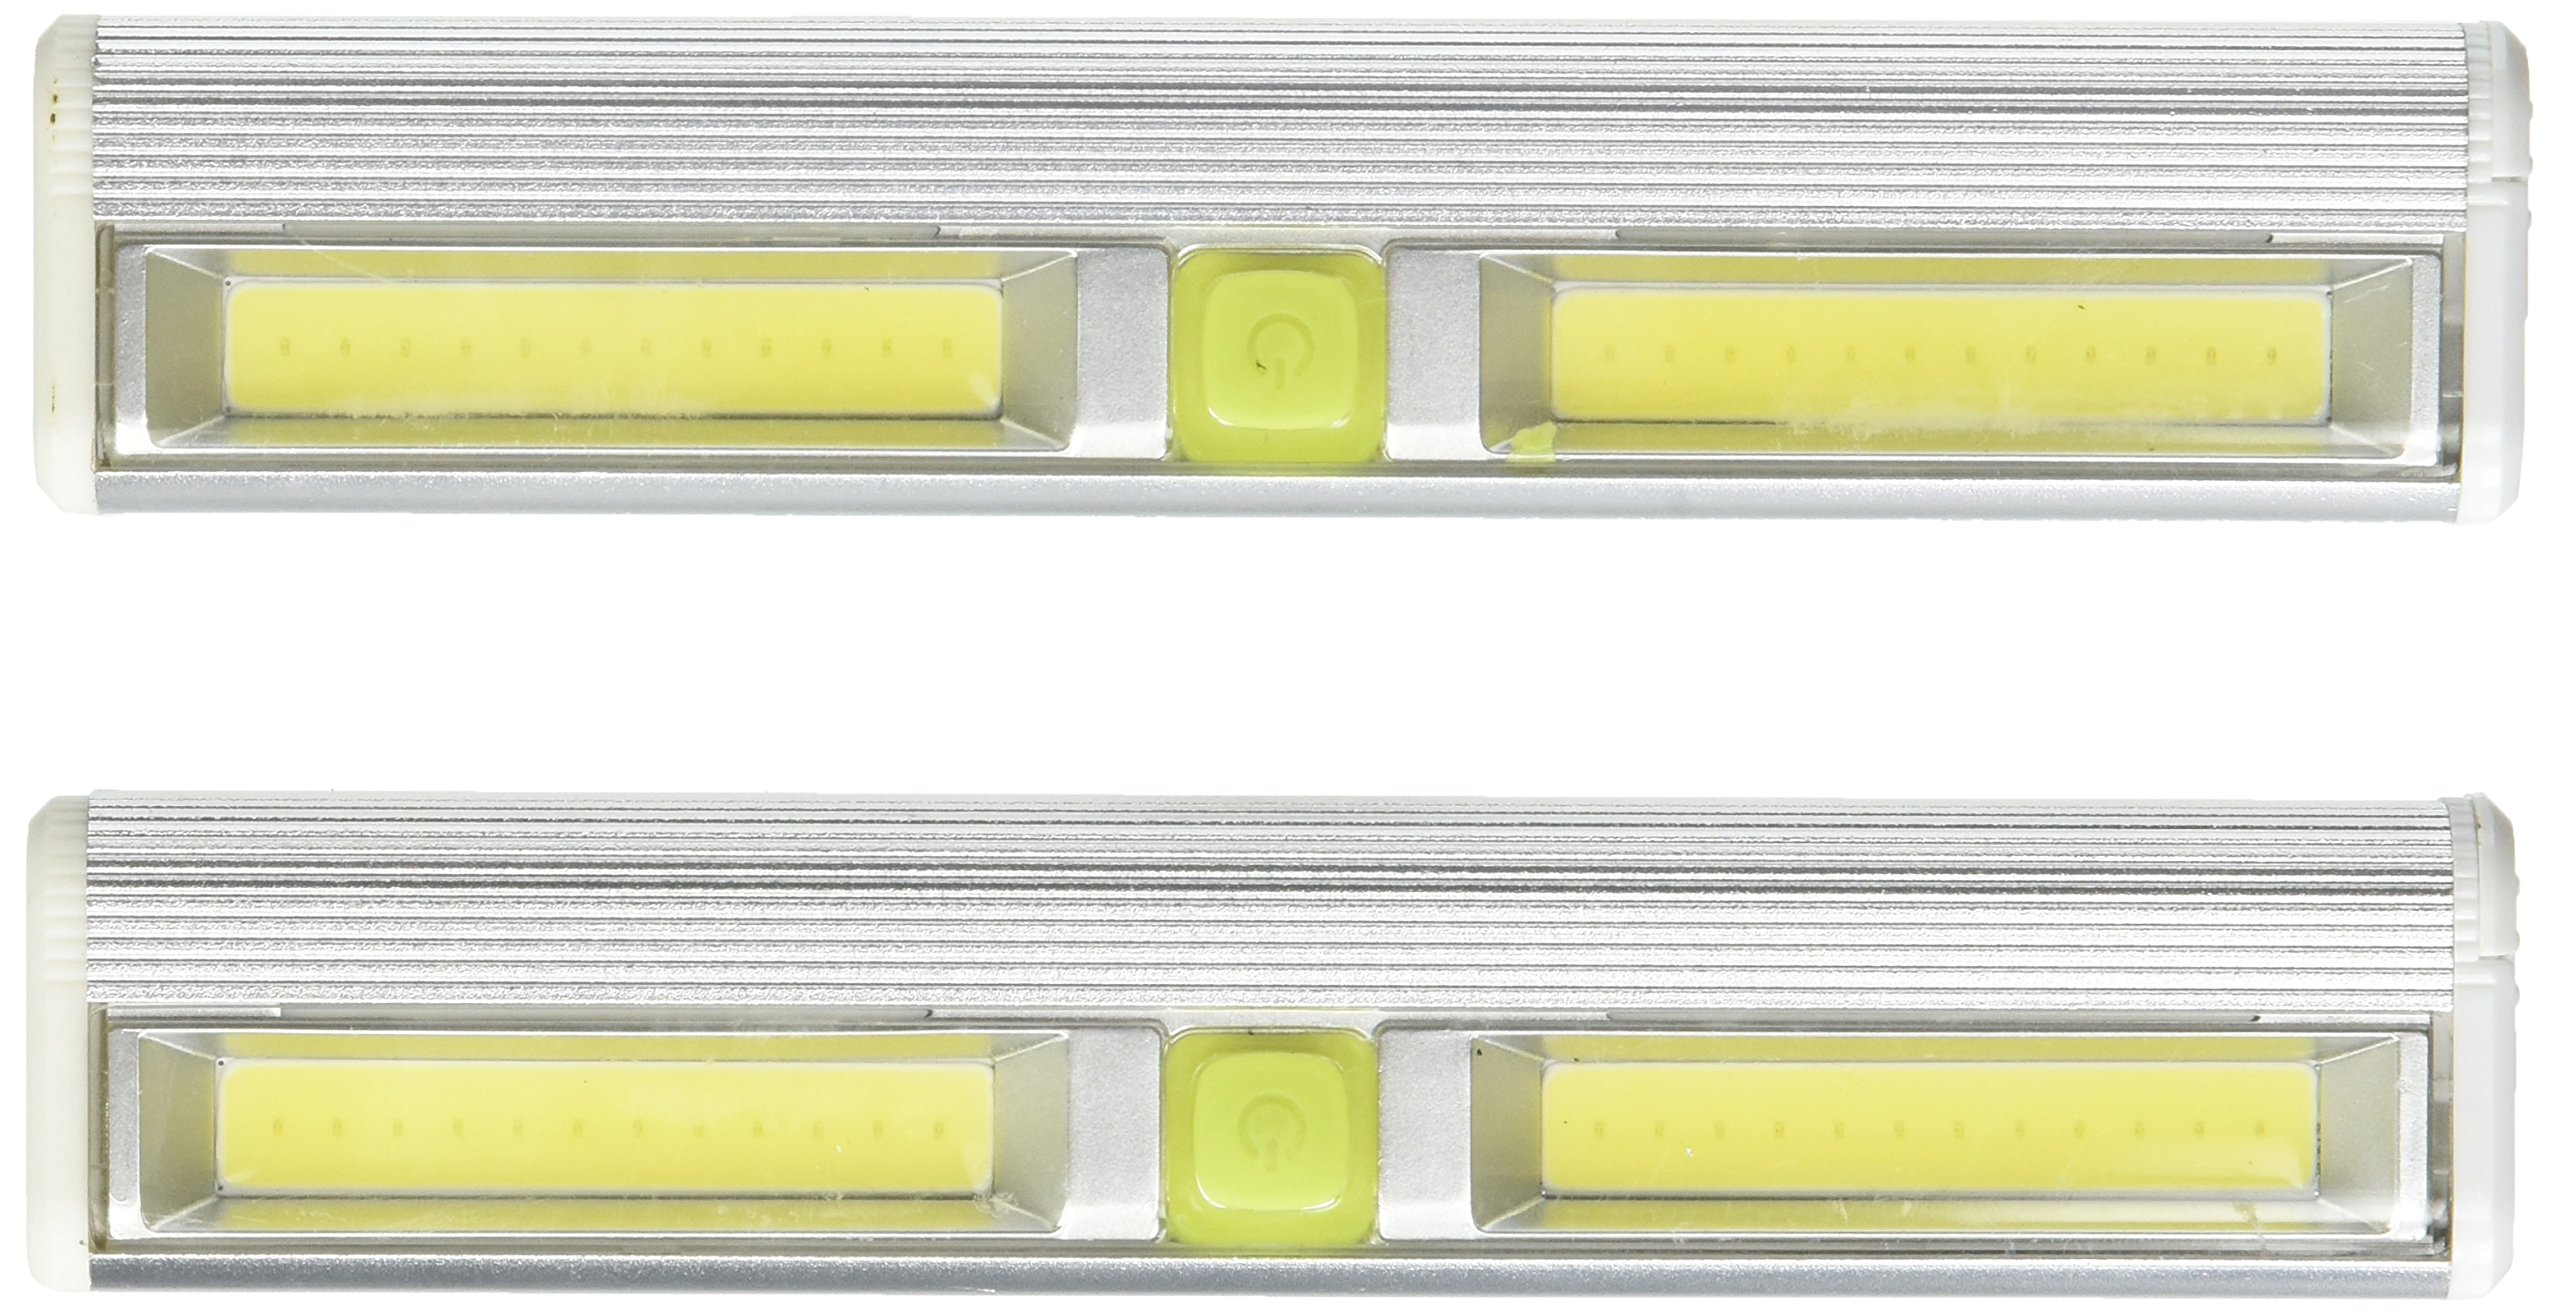 PROMIER Products P-COBCABX2-10/20 Inc 2PK Aluminum Cob LED Light Bar